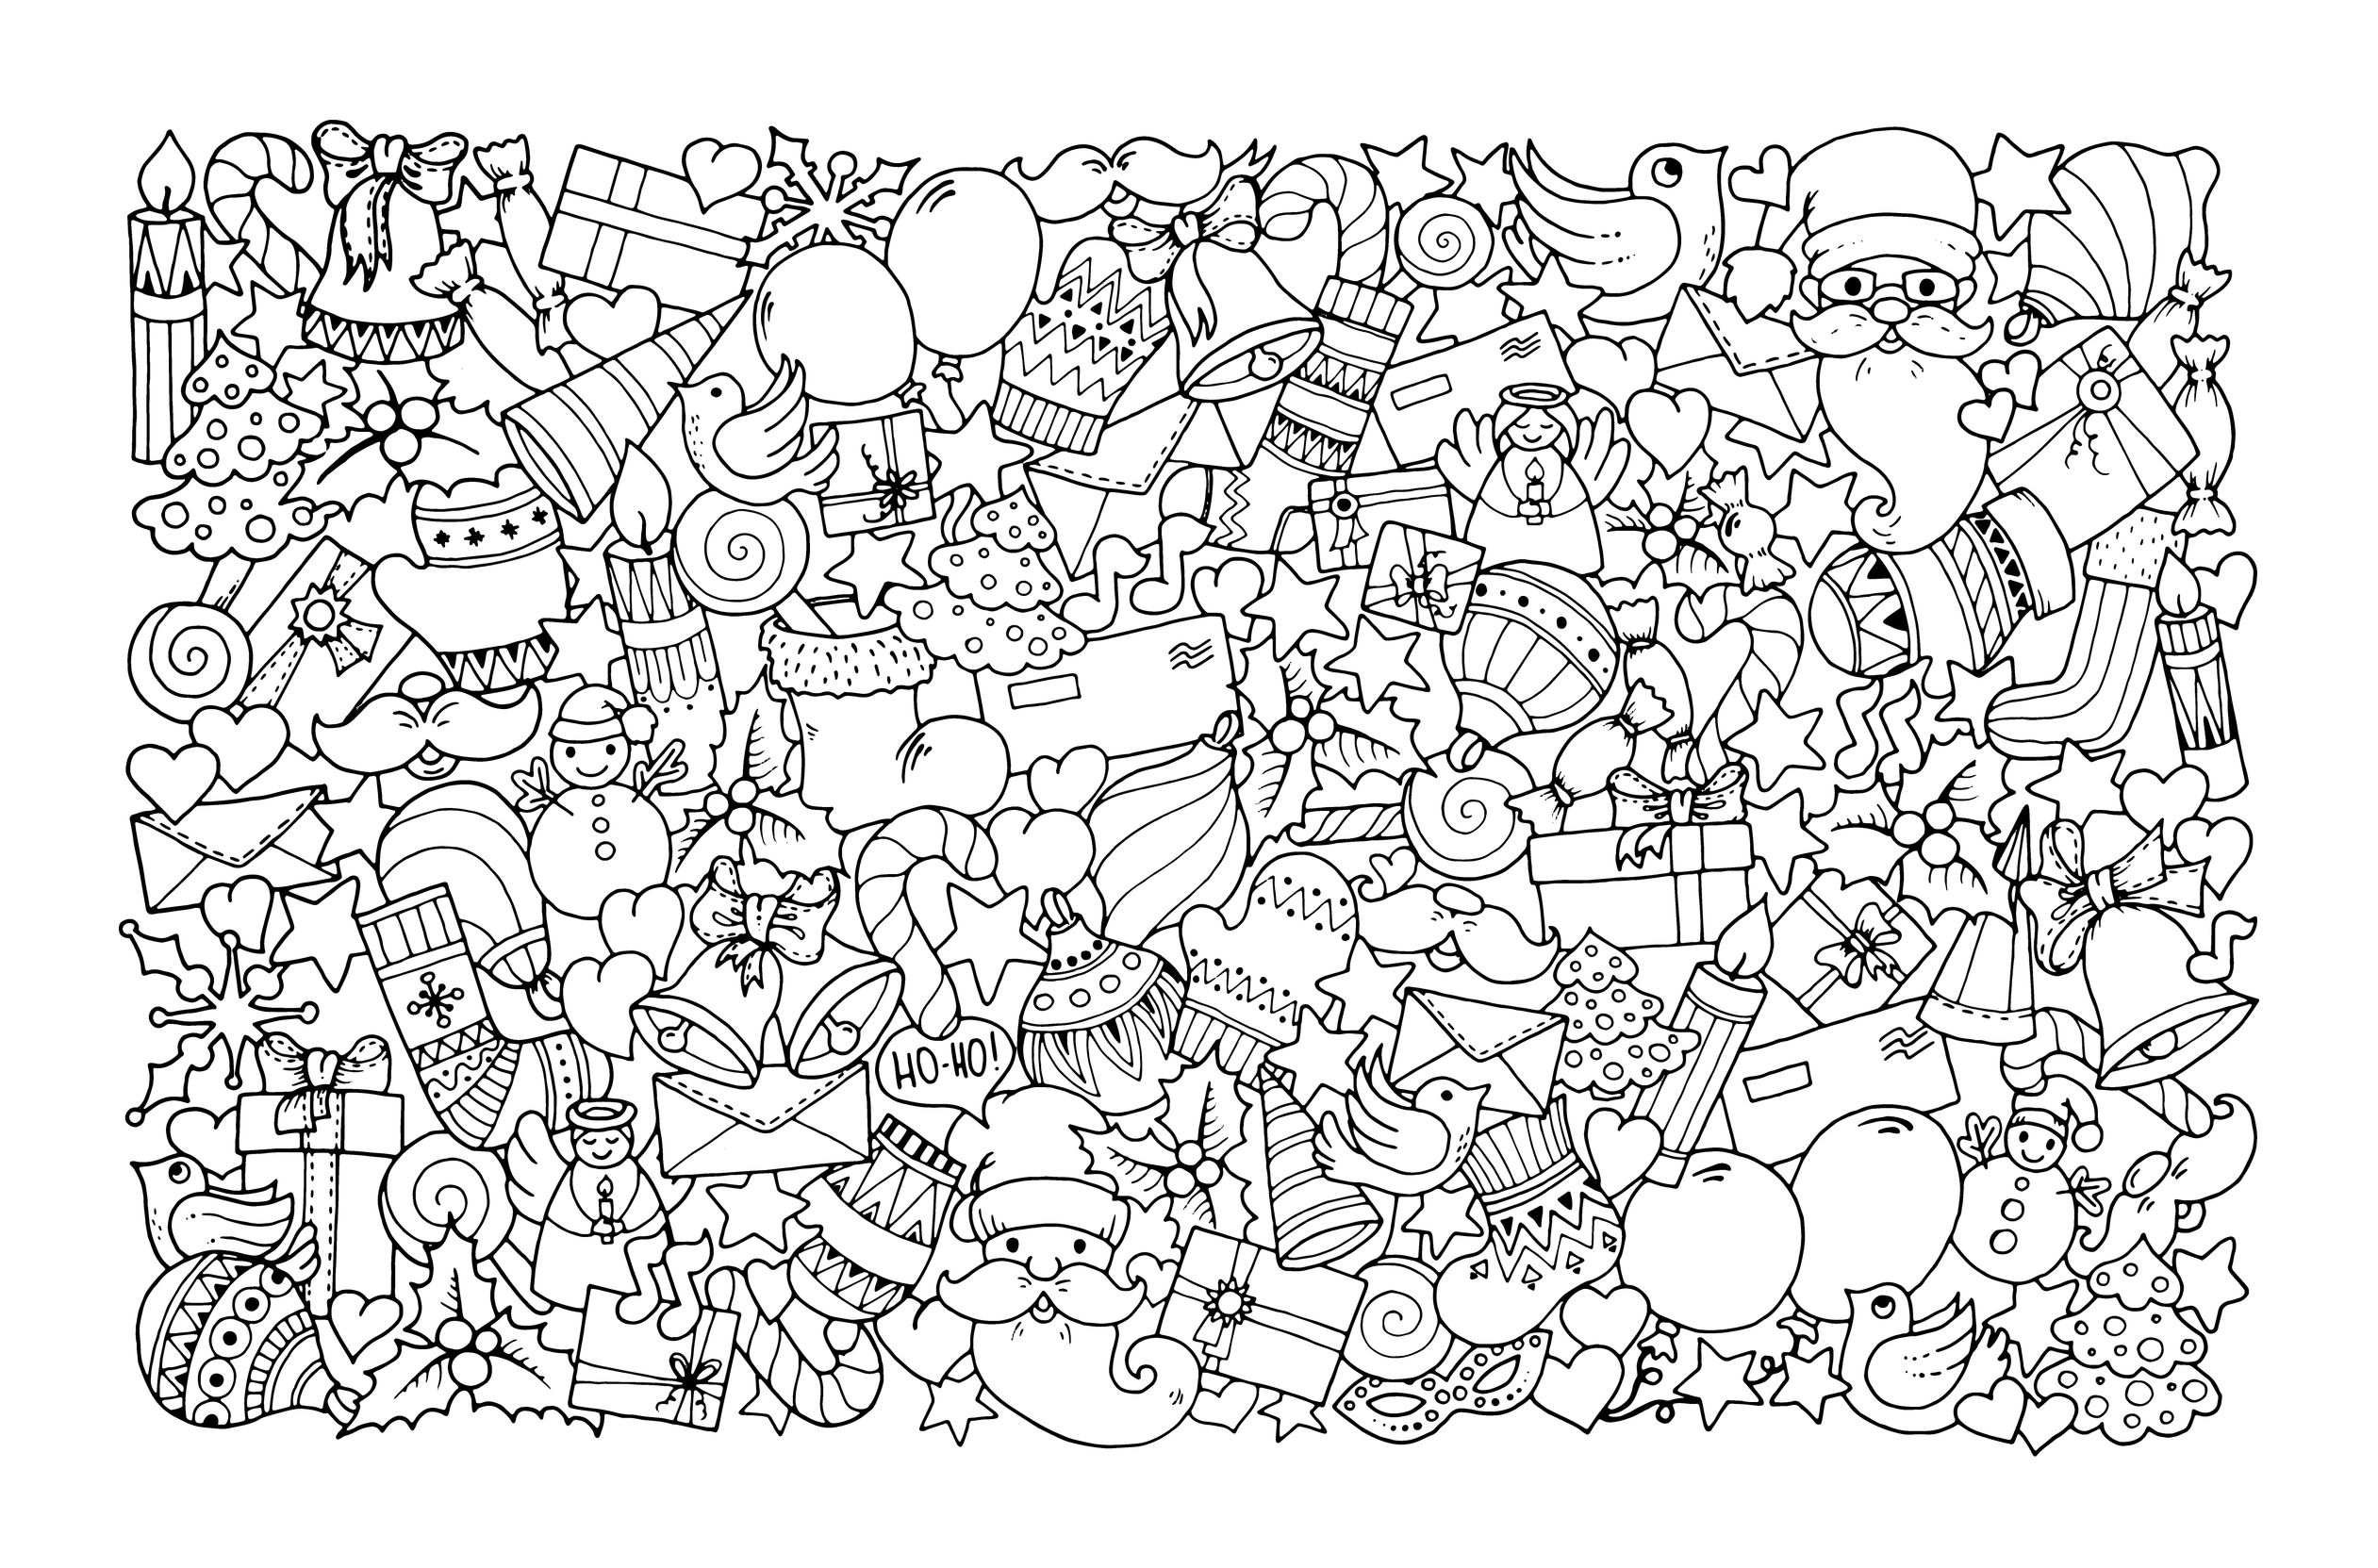 50559284 - christmas theme. doodle background with balloon, bells, sweets, christmas socks, gift, mittens, envelope, letter, tree, star, candle, bird, snowman, ball, bow, heart and santa claus. ethnic ornaments. | A partir de la galerie : Noel